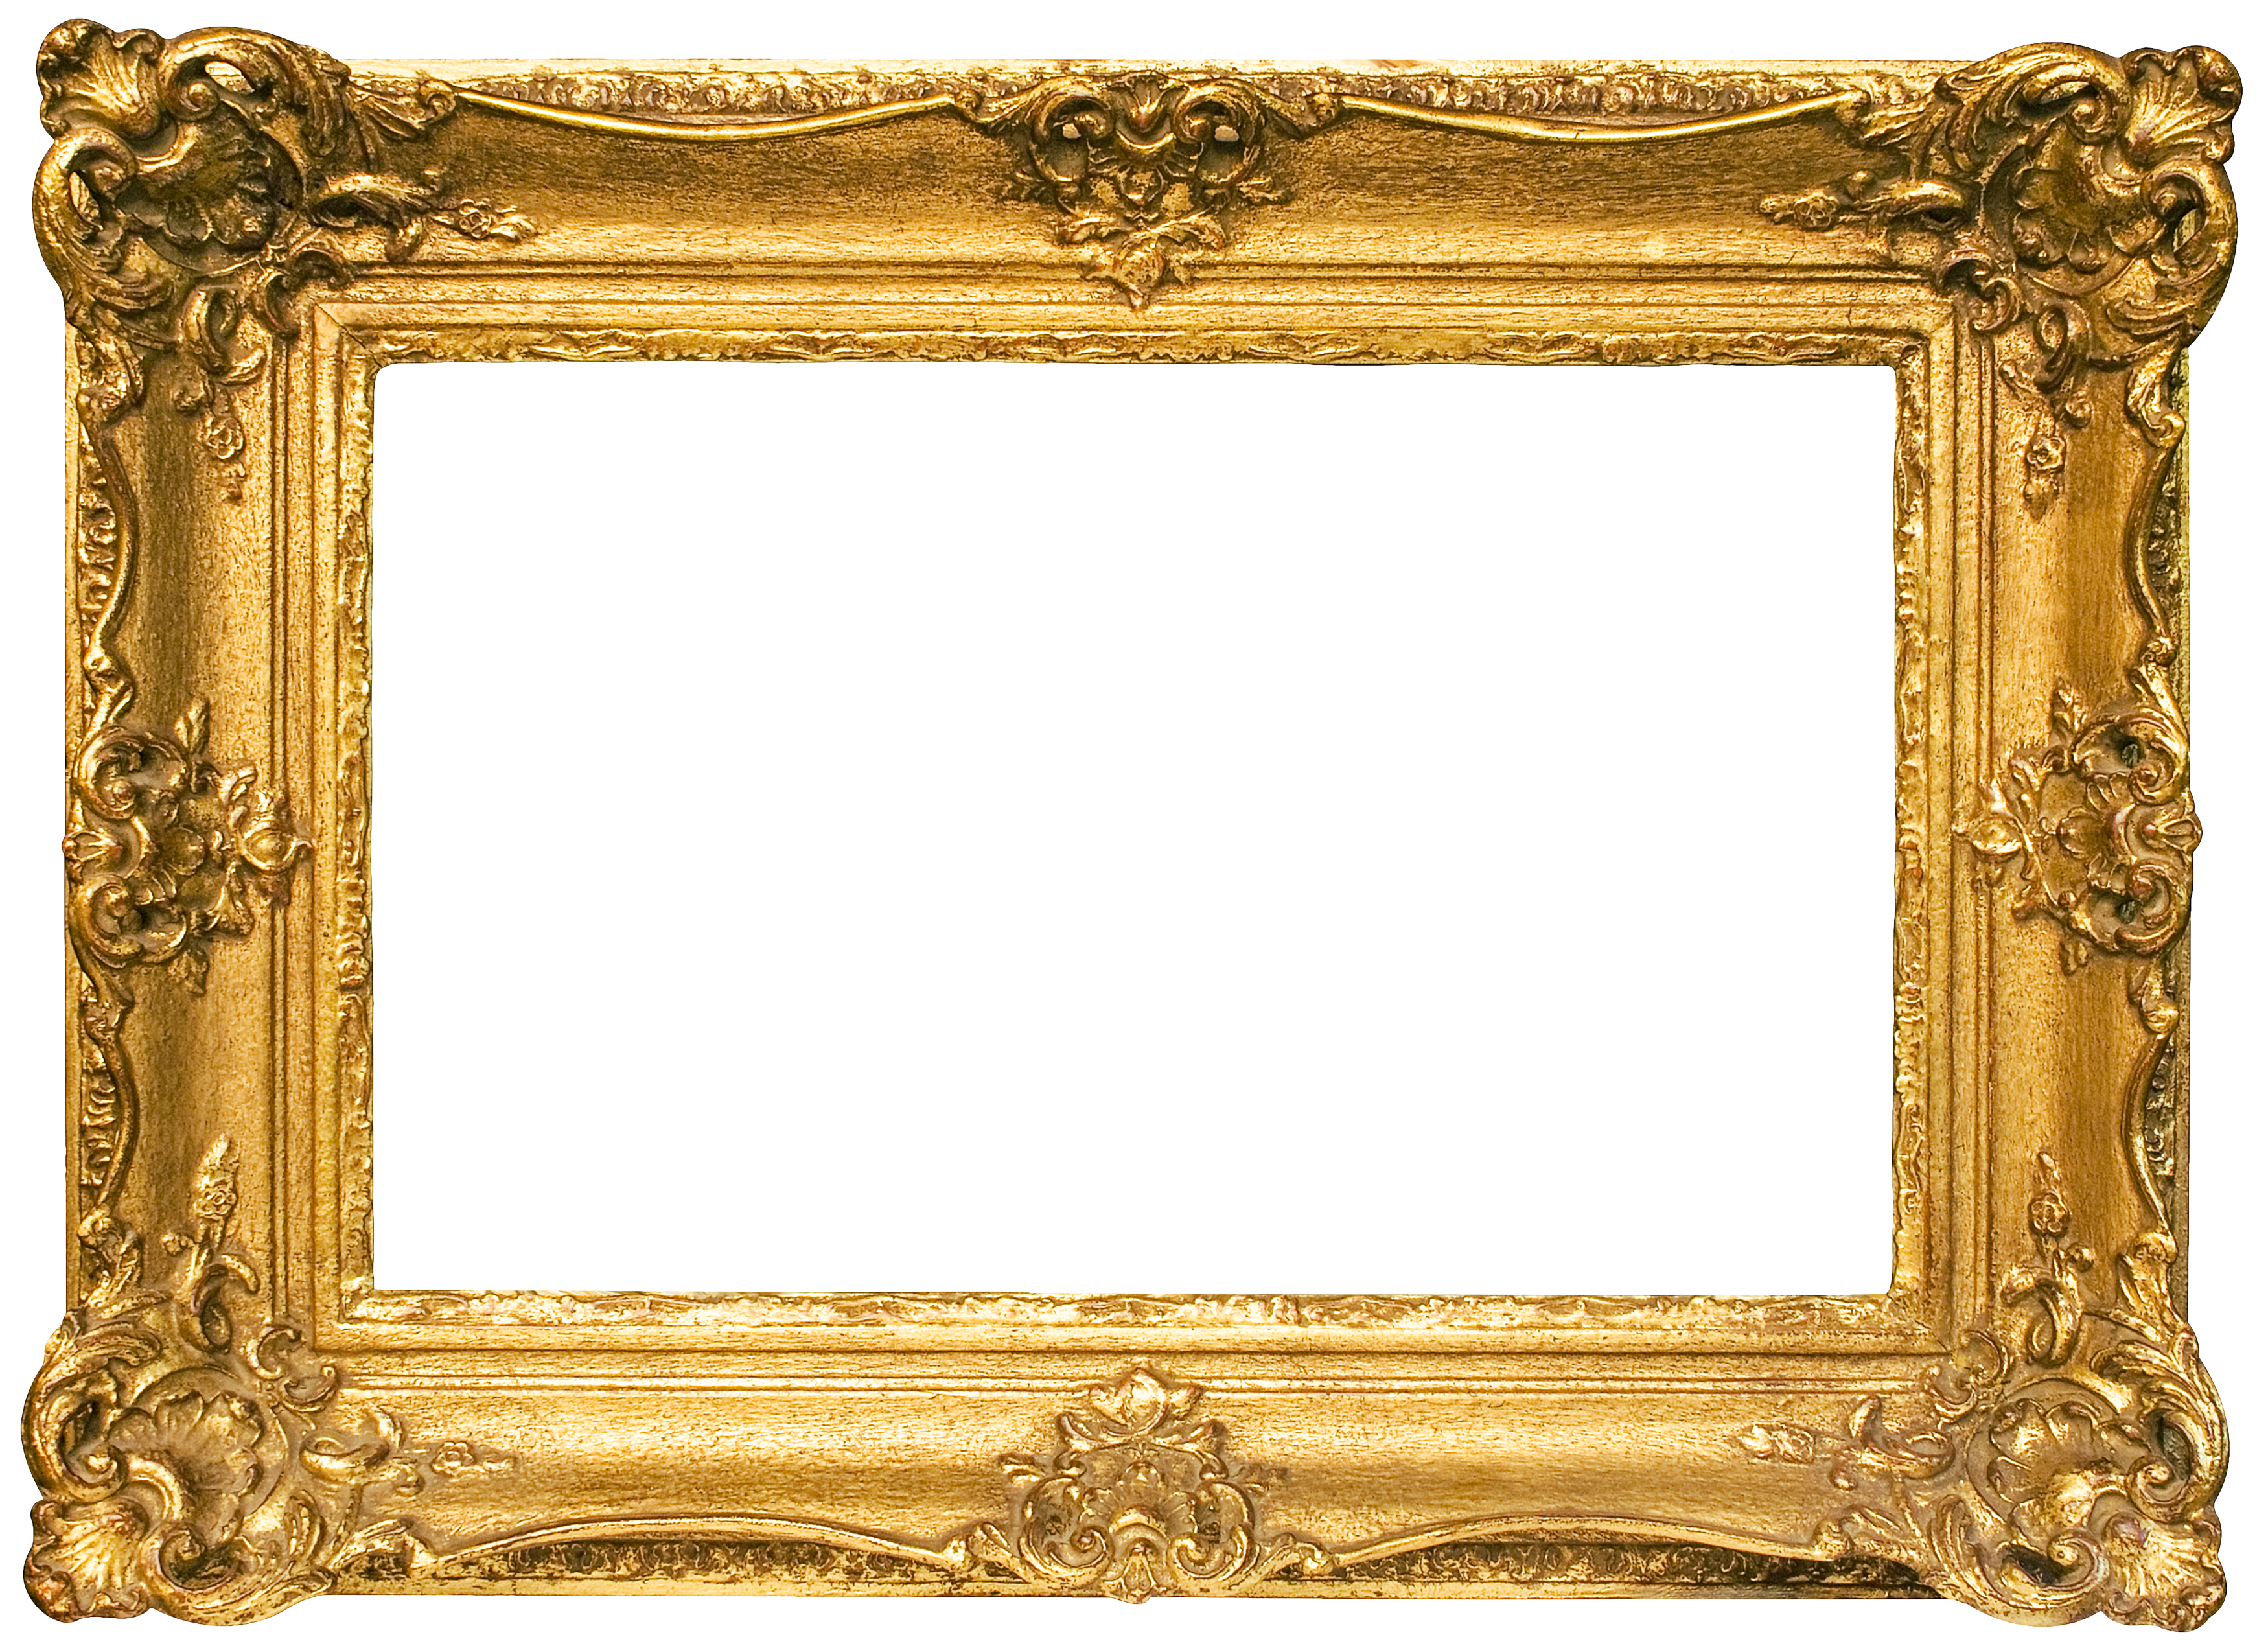 Classic Gold Frame Transparent PNG Image (con imágenes